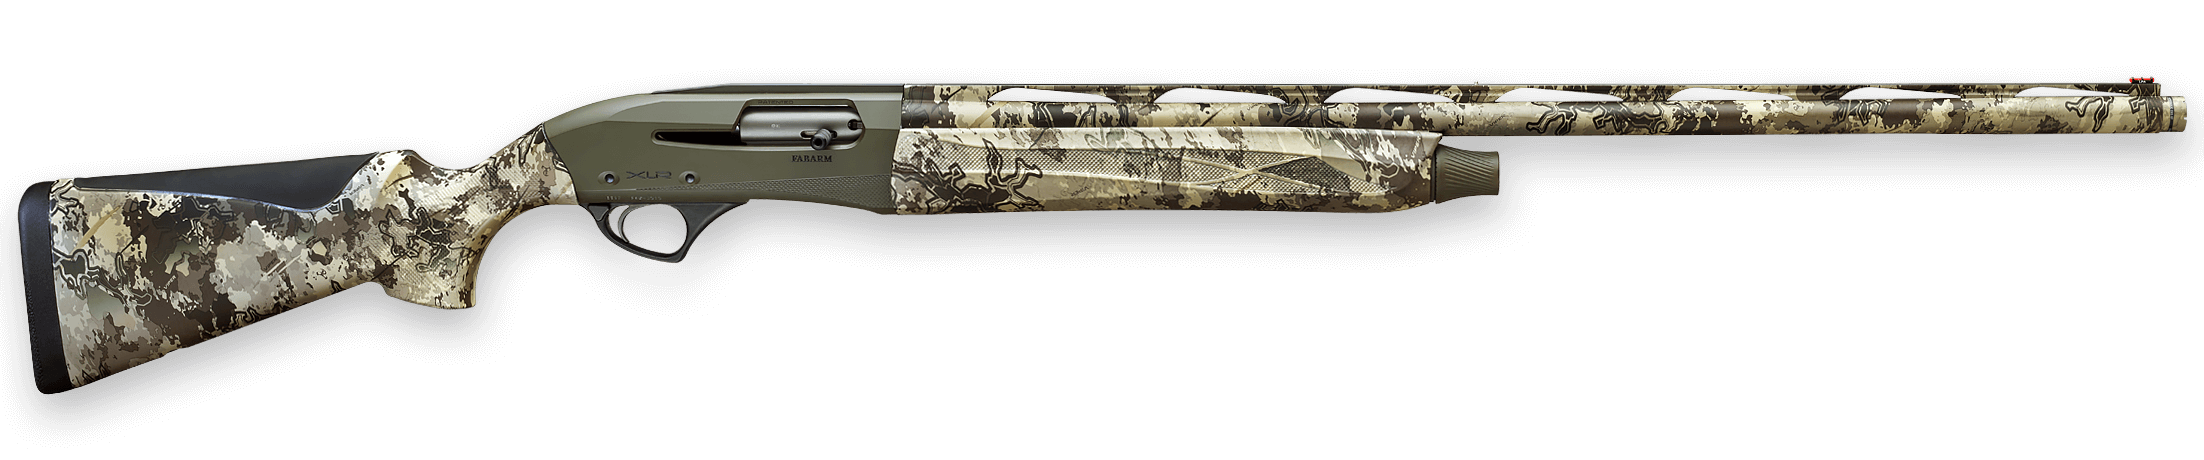 FABARM XLR5 Waterfowler (True Timber Viper)  Starting at $1,795 MSRP (Competitive Pricing Available)